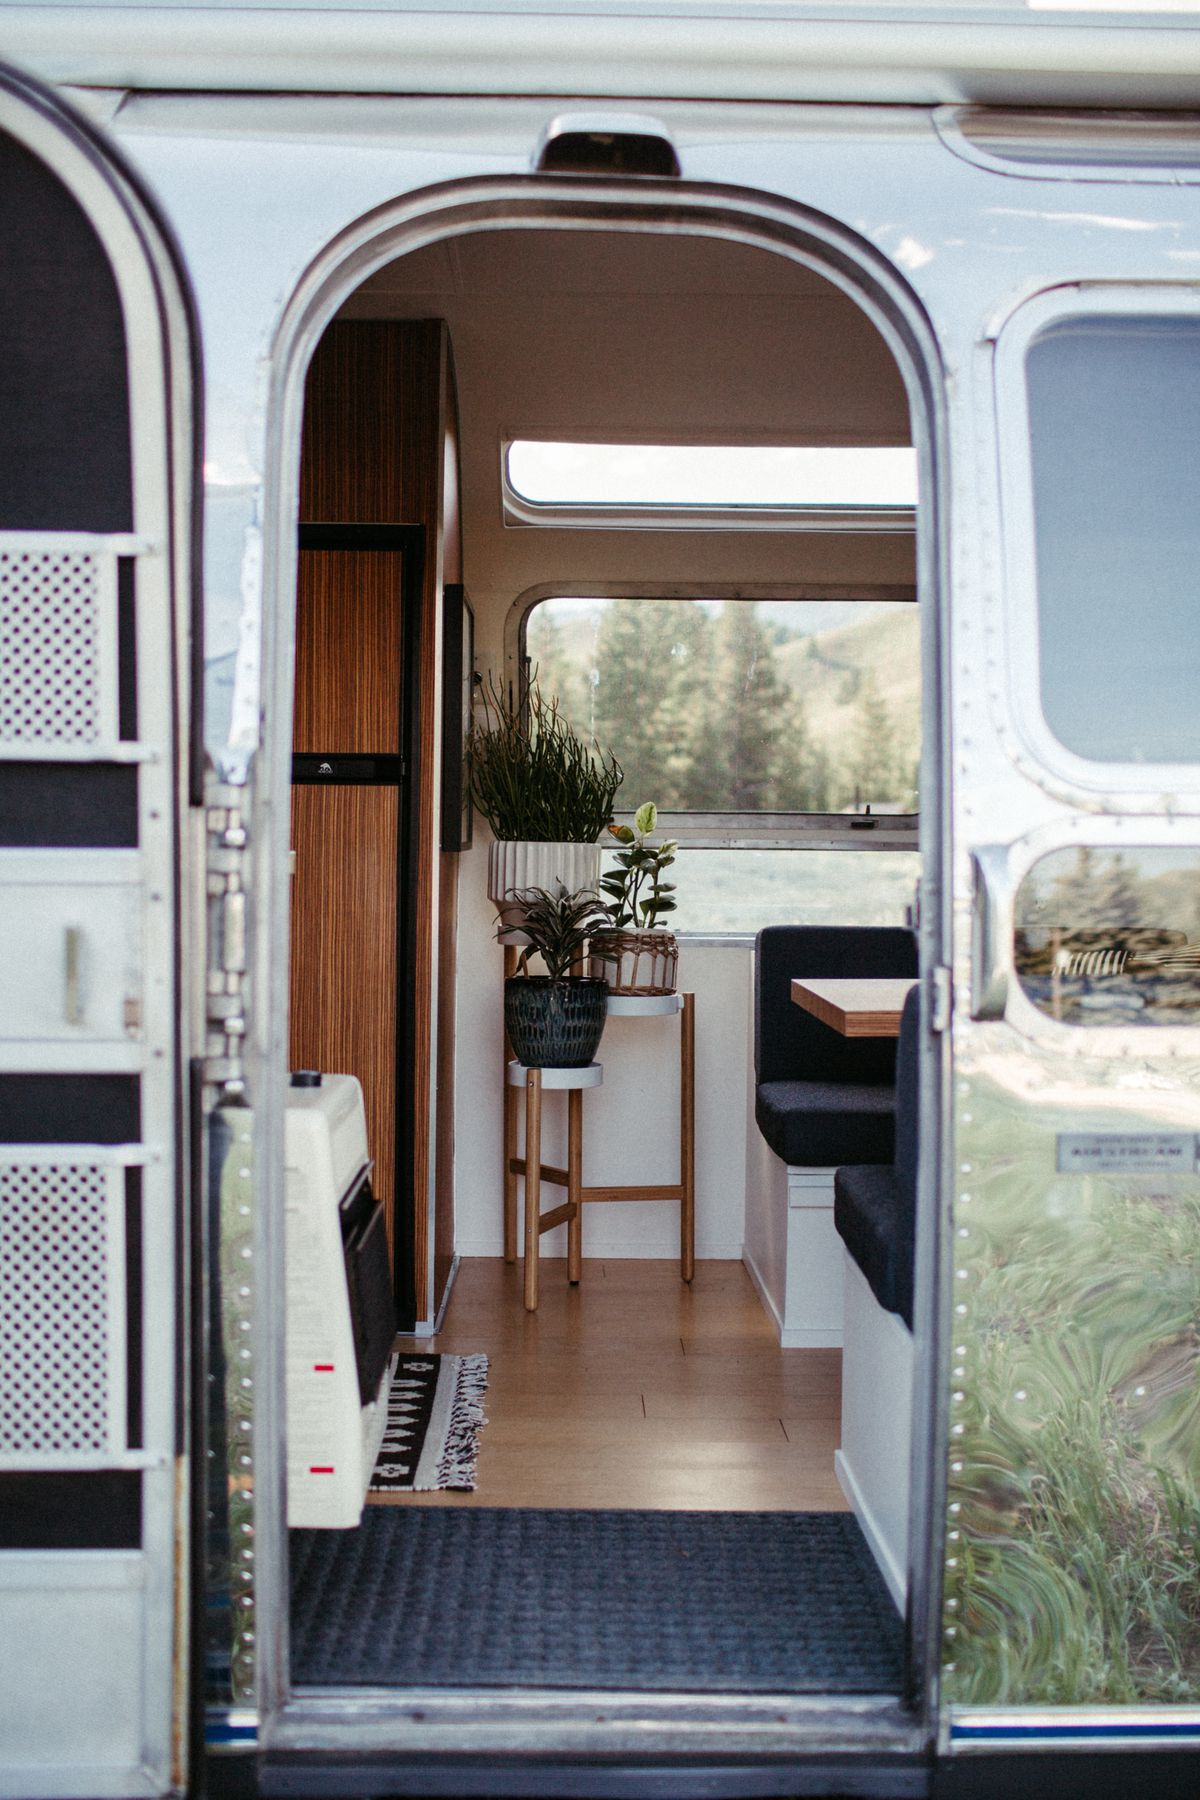 A door of an Airstream trailer is open and you can see plants and a dinette inside.